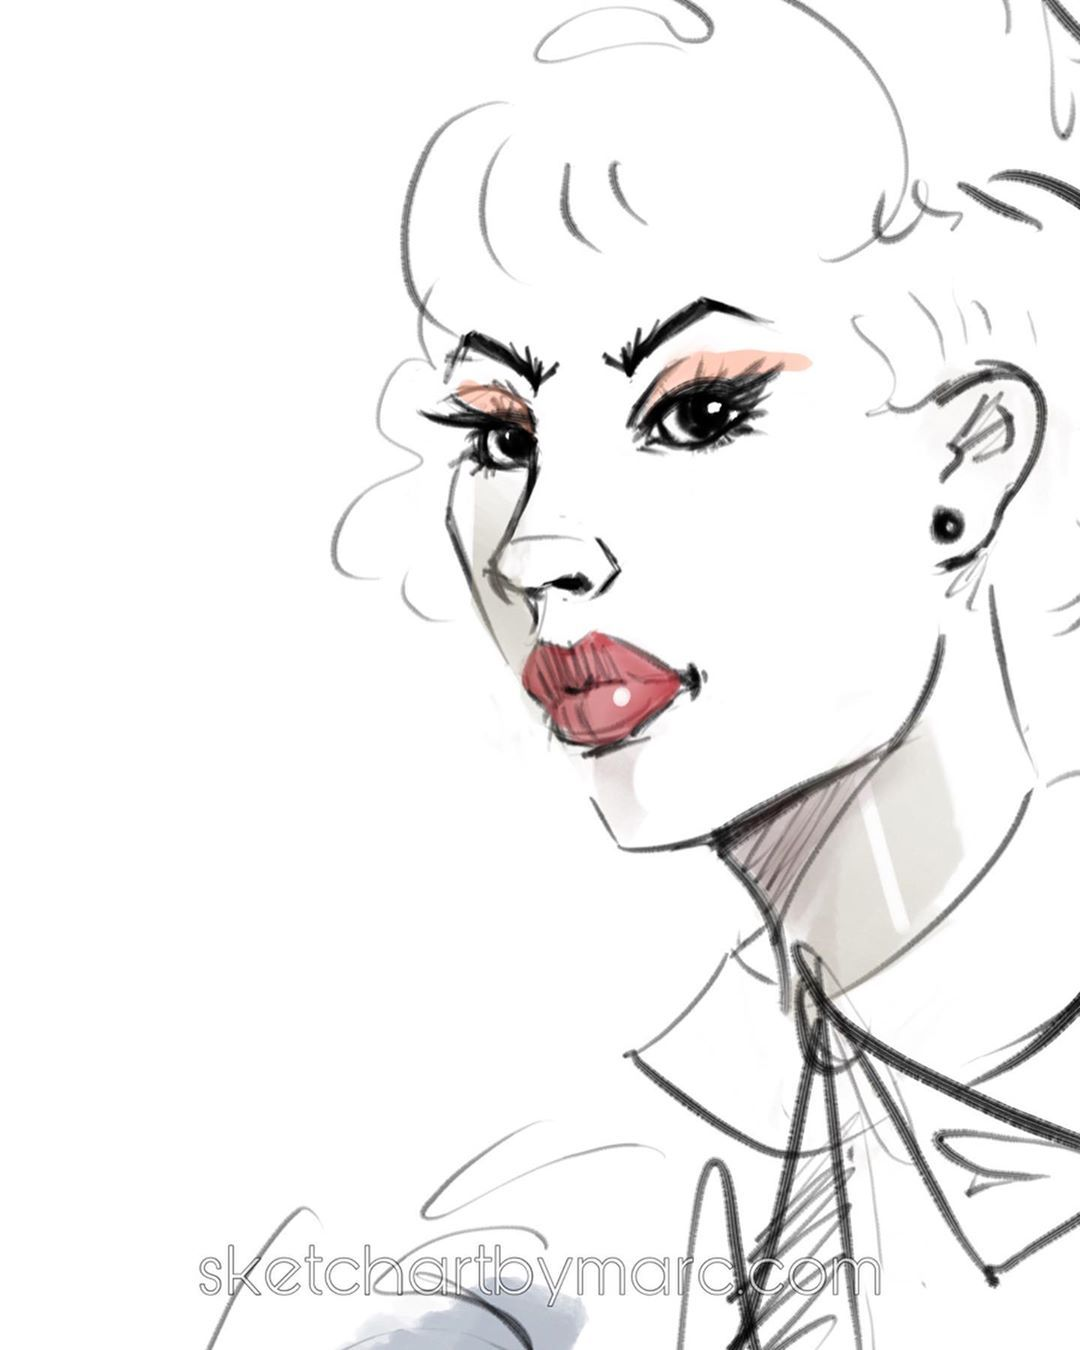 Subtle beauty is always there......Subtle beauty is always there...  -  -  #autodesksketchbook #quicksketch #artlife #imagination #illustration #fashion #procreateartist #procreate #procreateart #fashionsketch #gesture #design #dailydrawing #character #beauty #fashionart #style #dailydrawing #fashionillustration #redlips #blue #sketching #ipadpro #roughsketch